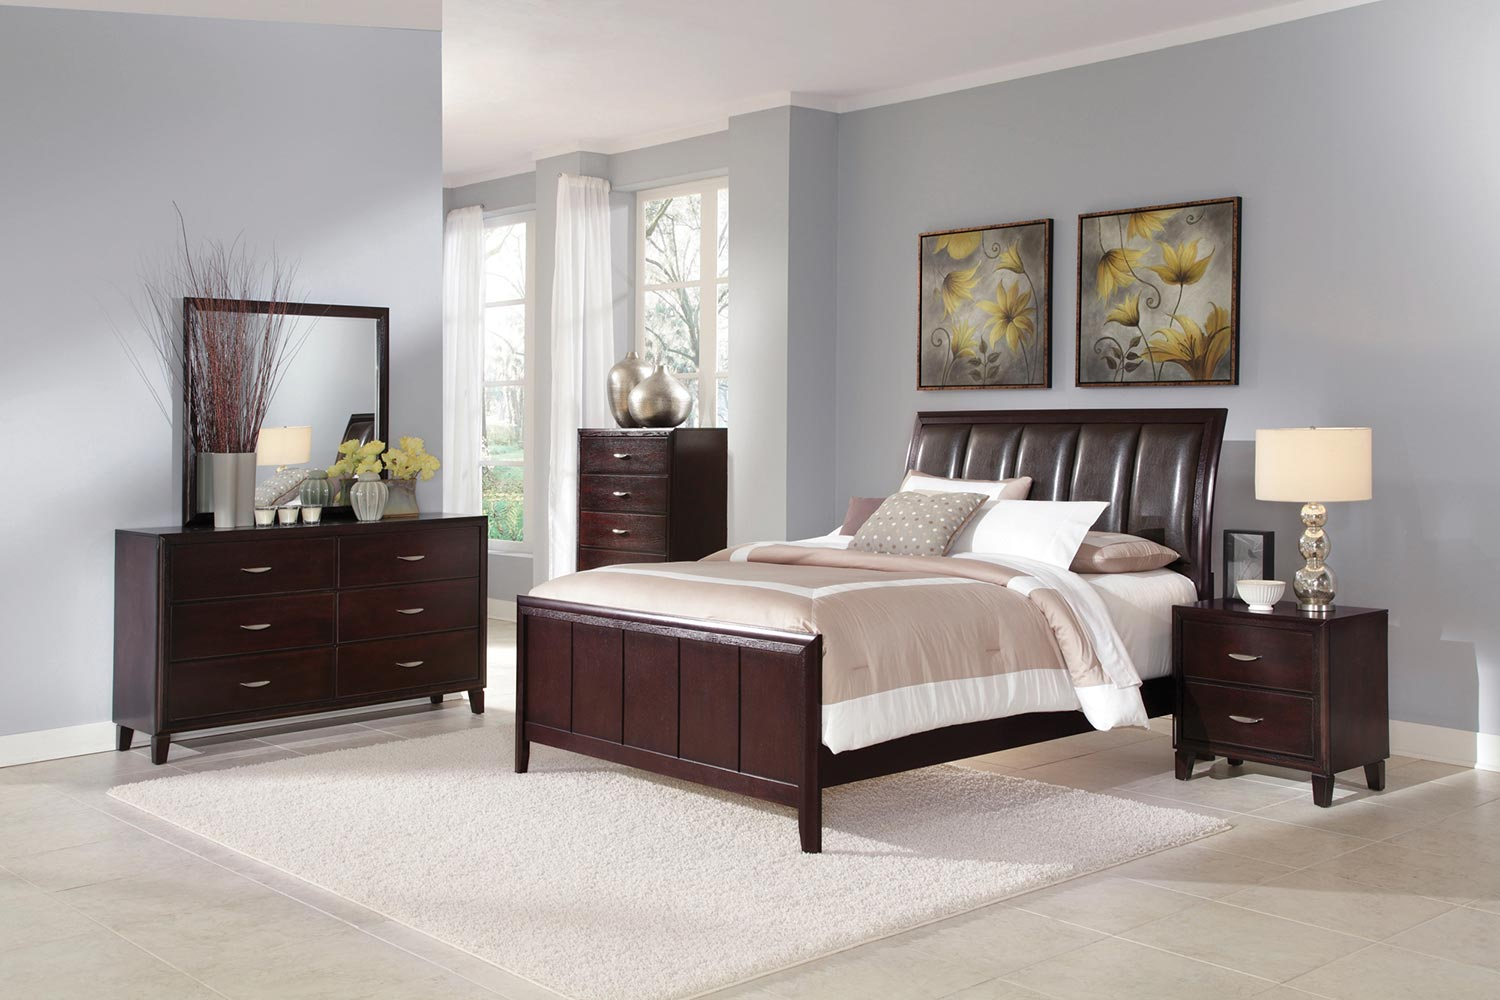 Coaster Coventry Bedroom Set